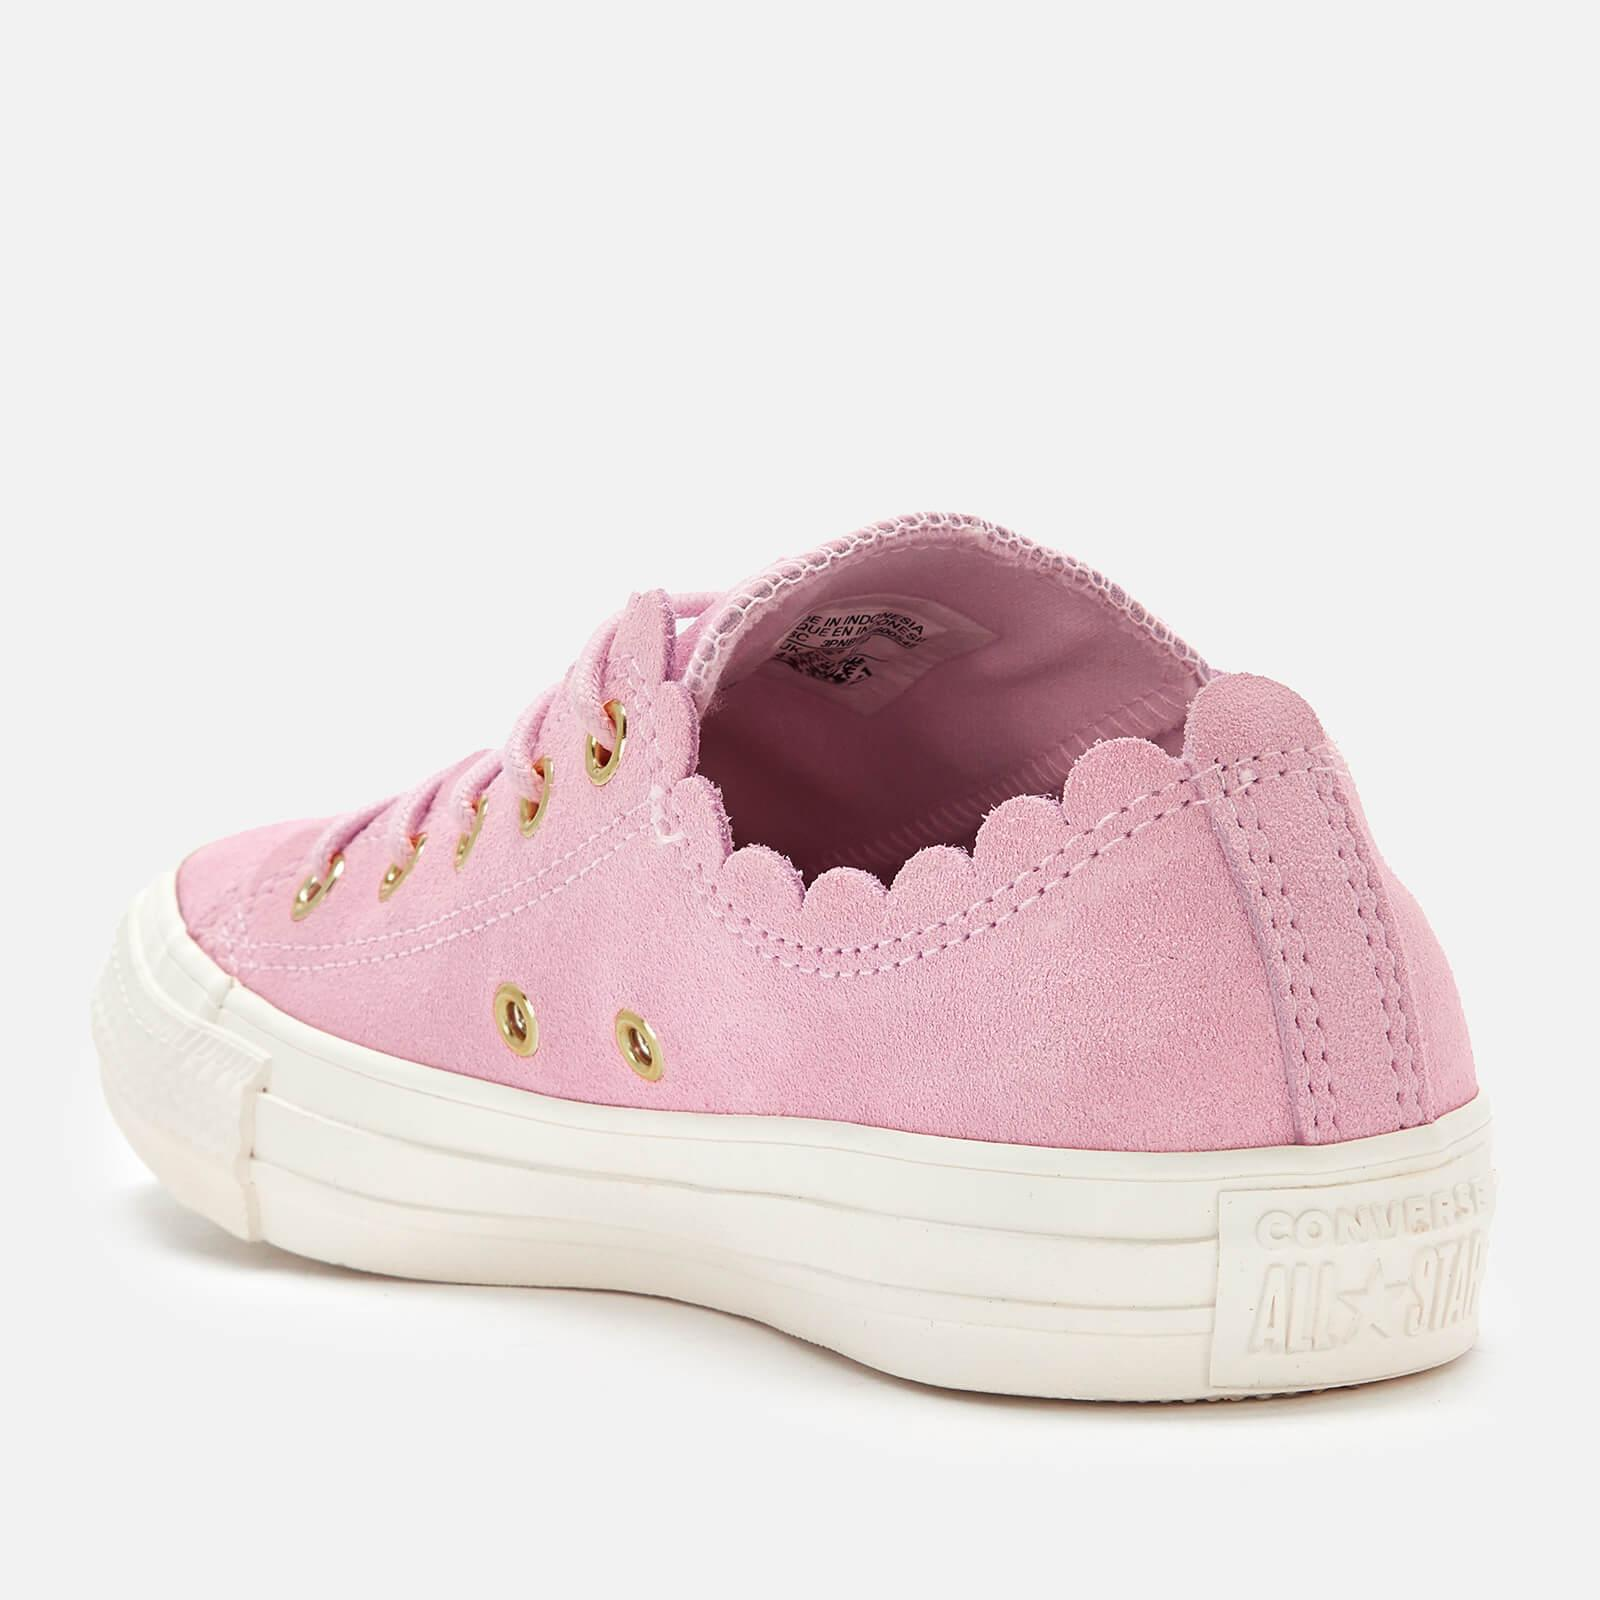 Converse - Pink Chuck Taylor All Star Scalloped Edge Ox Trainers - Lyst.  View fullscreen 4b2c982cf